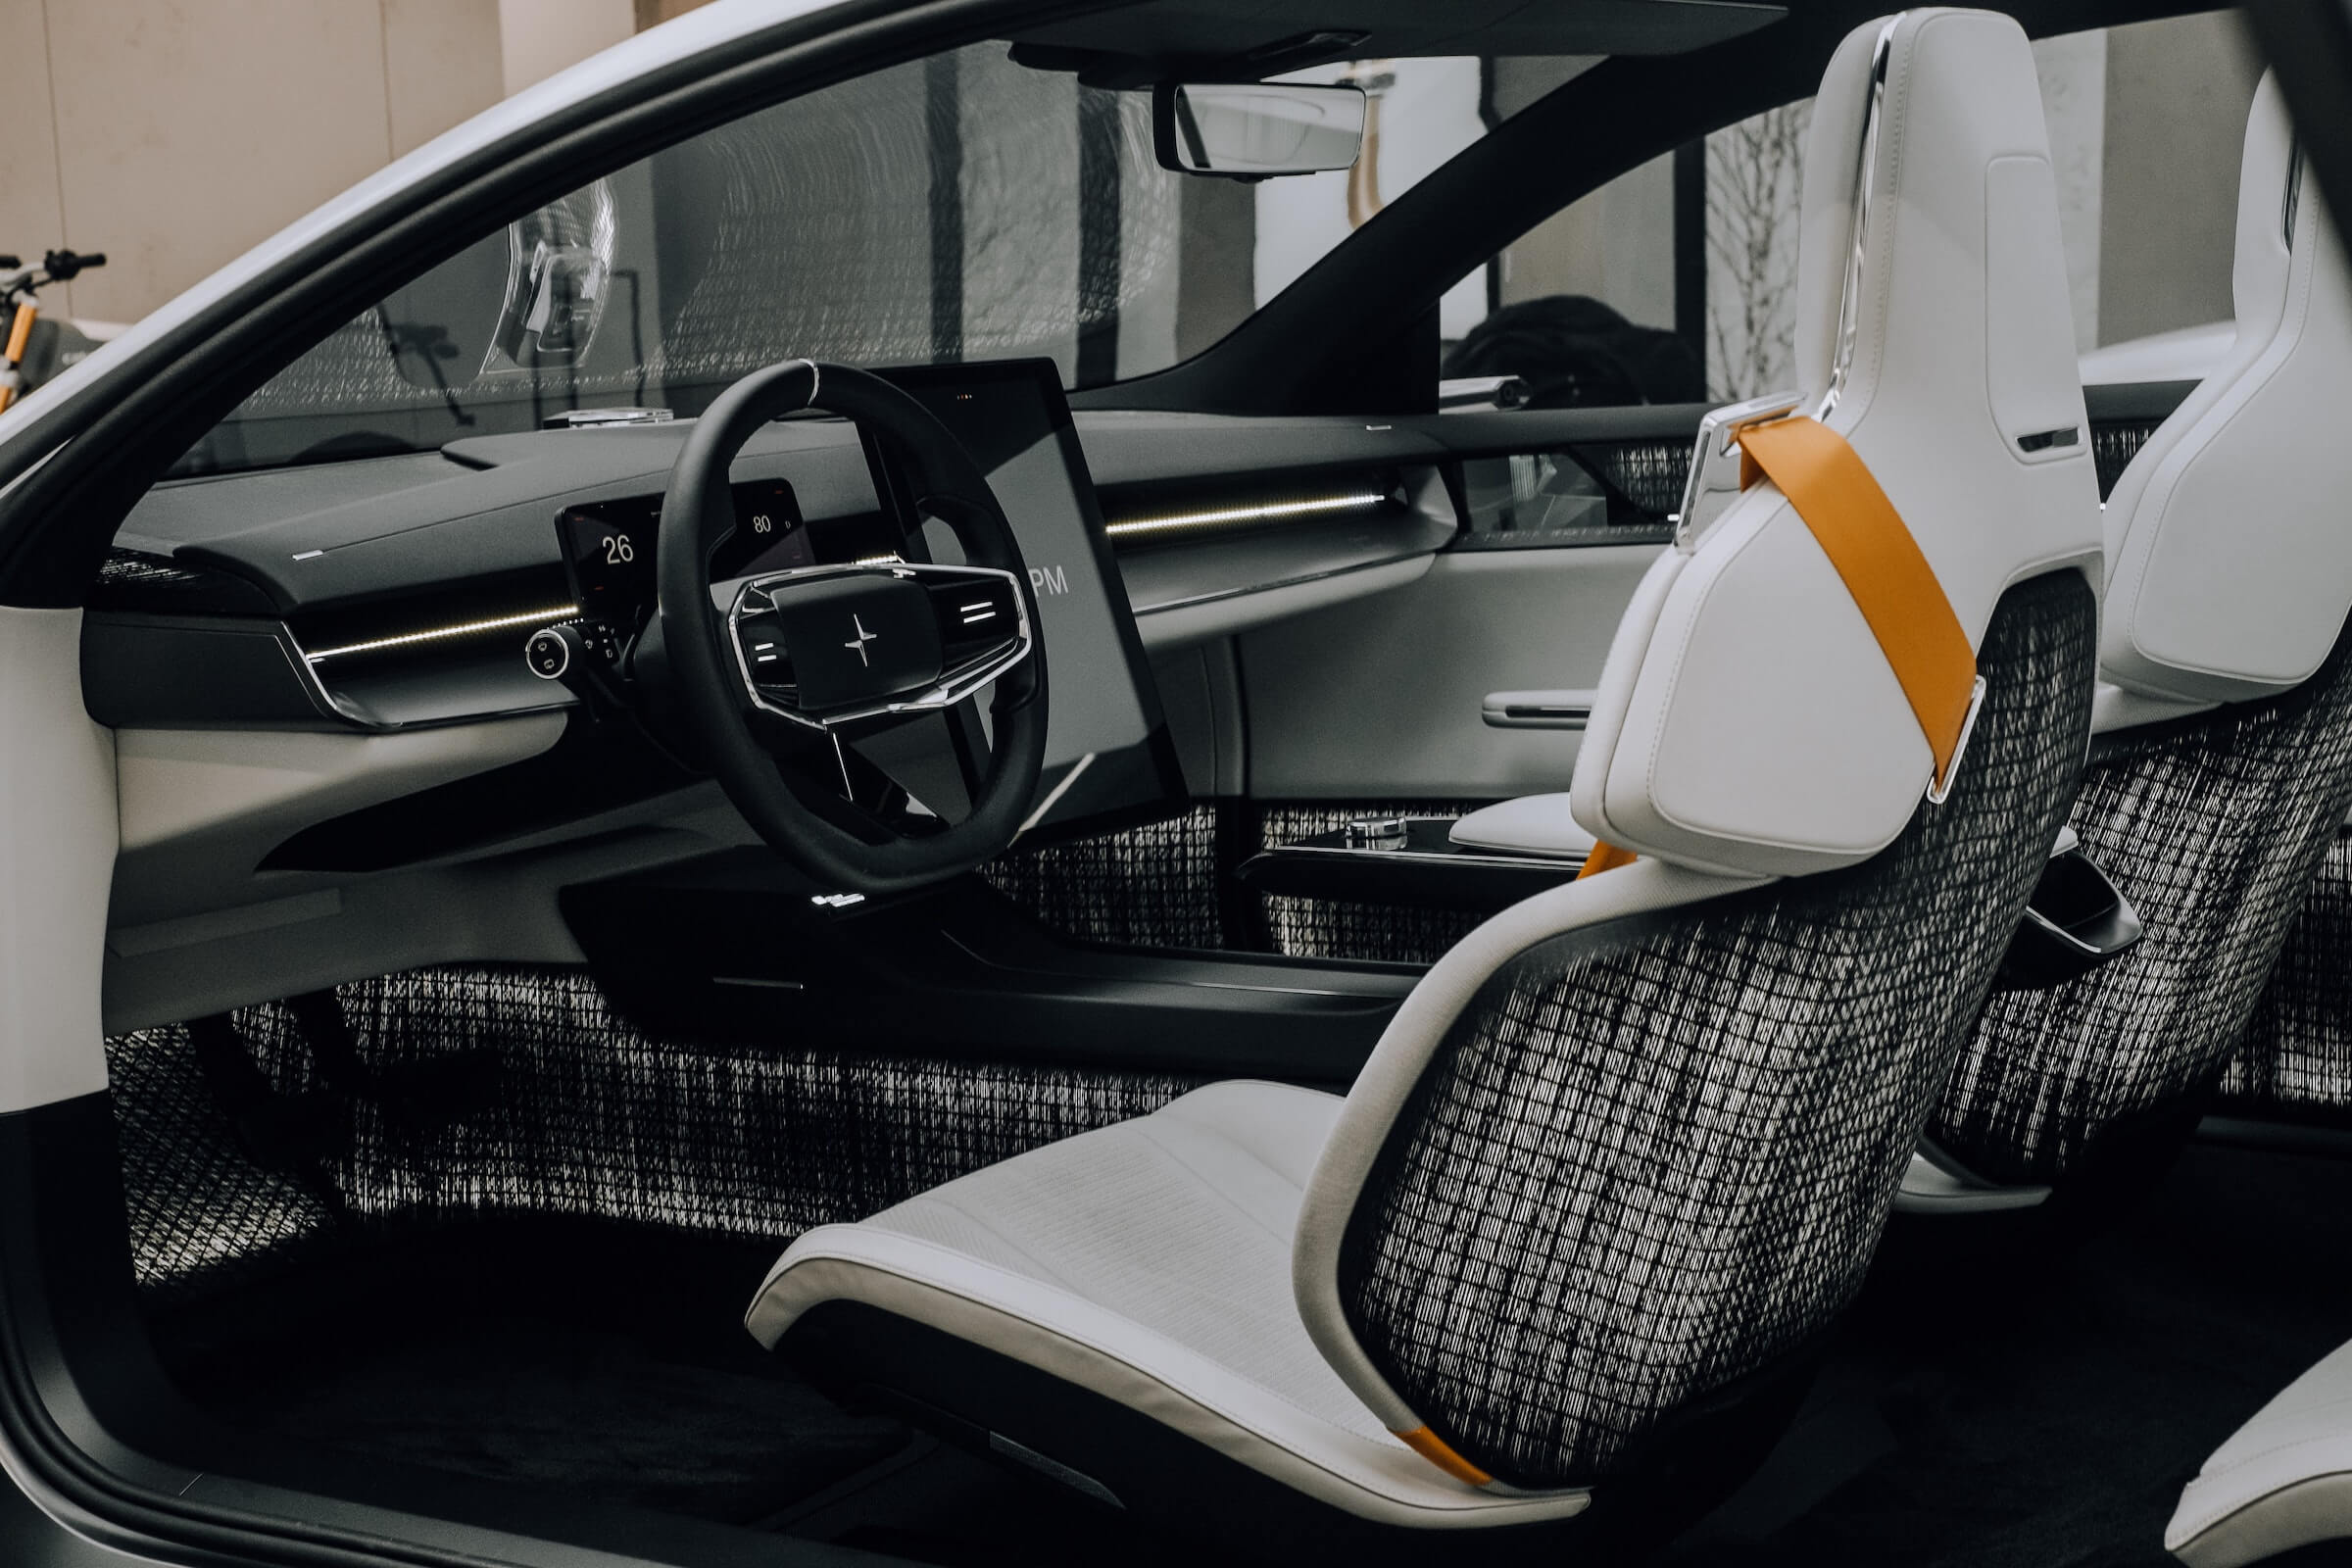 The interior of a car shot from the driver's side door showing the steering wheel and infotainment system